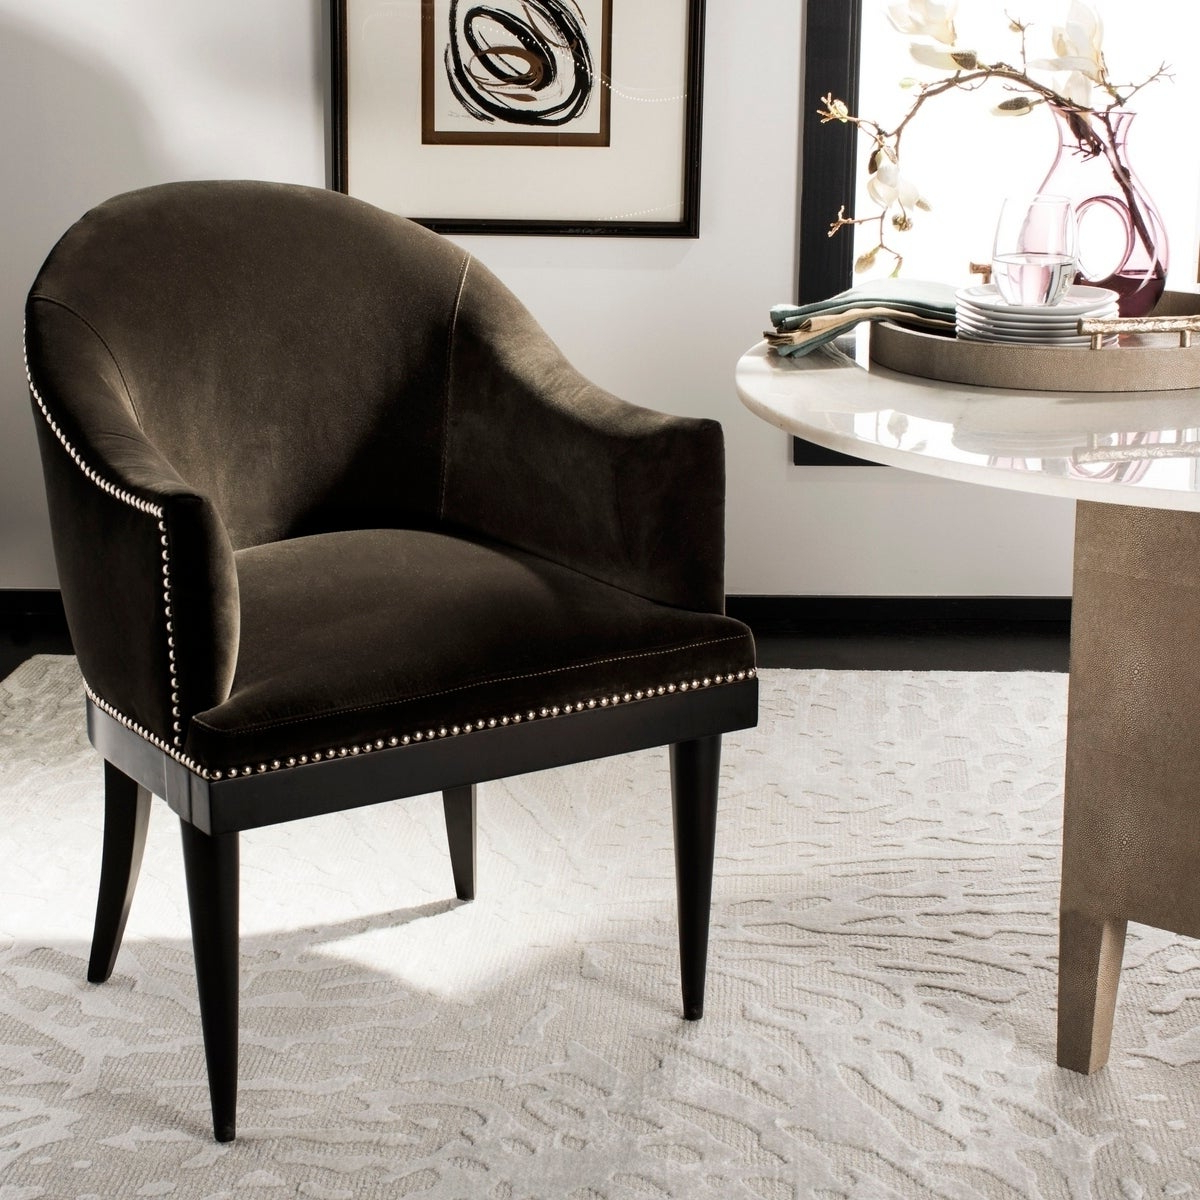 Shop Safavieh Couture Maynard Giotto Shale Commercial Grade Arm Inside Most Recently Released Maynard 5 Piece Dining Sets (View 15 of 25)